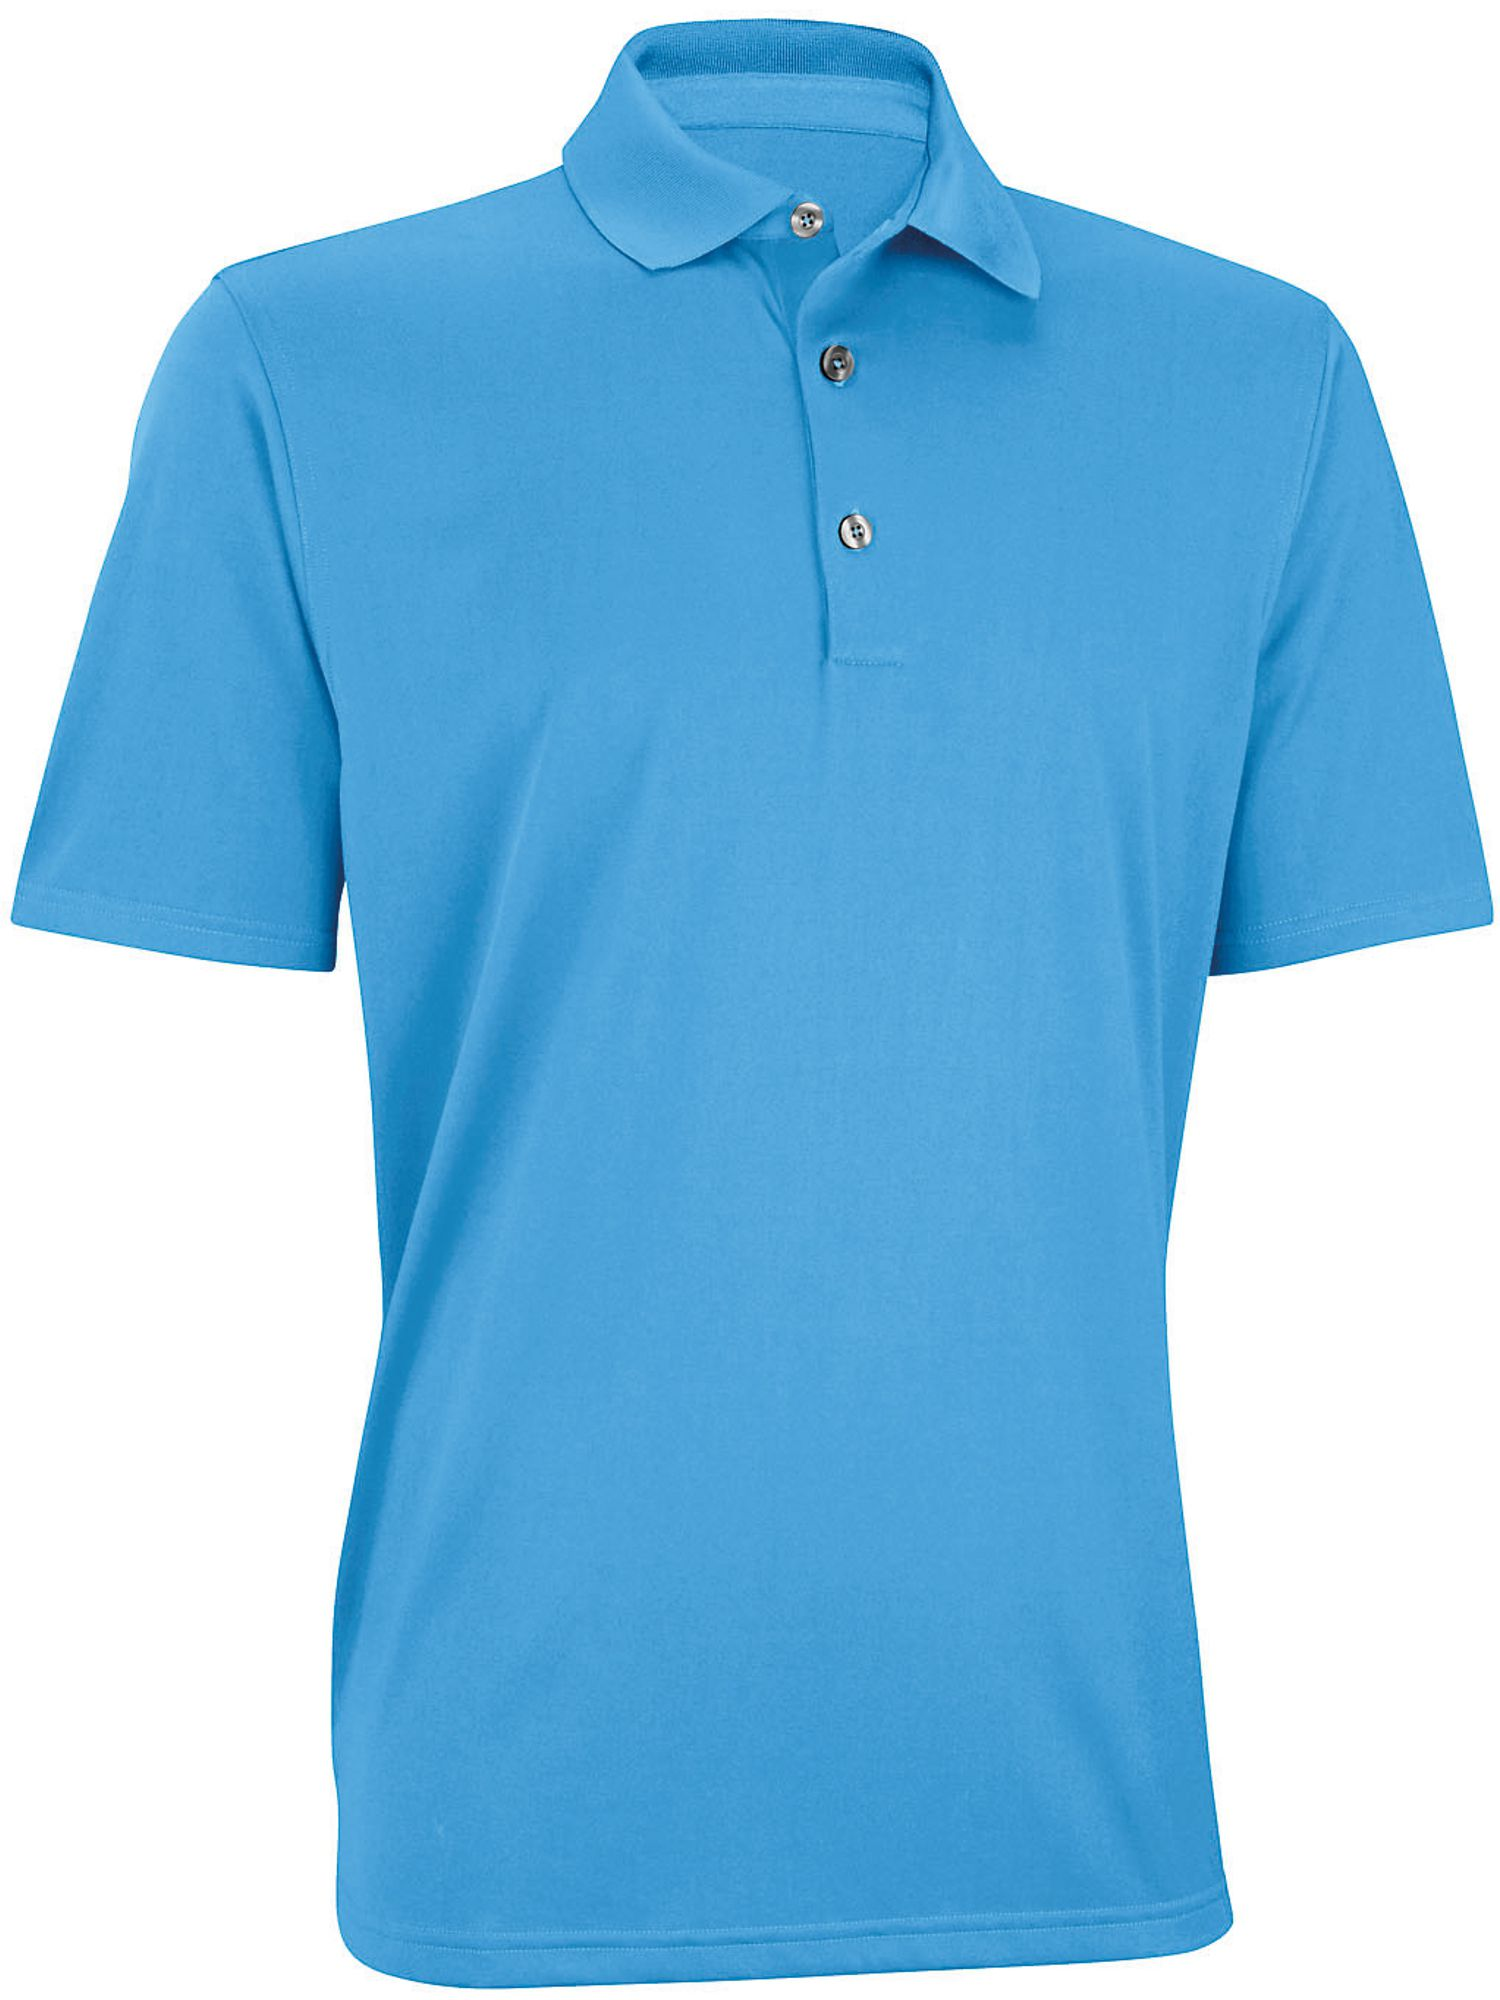 Performance solid golf shirt